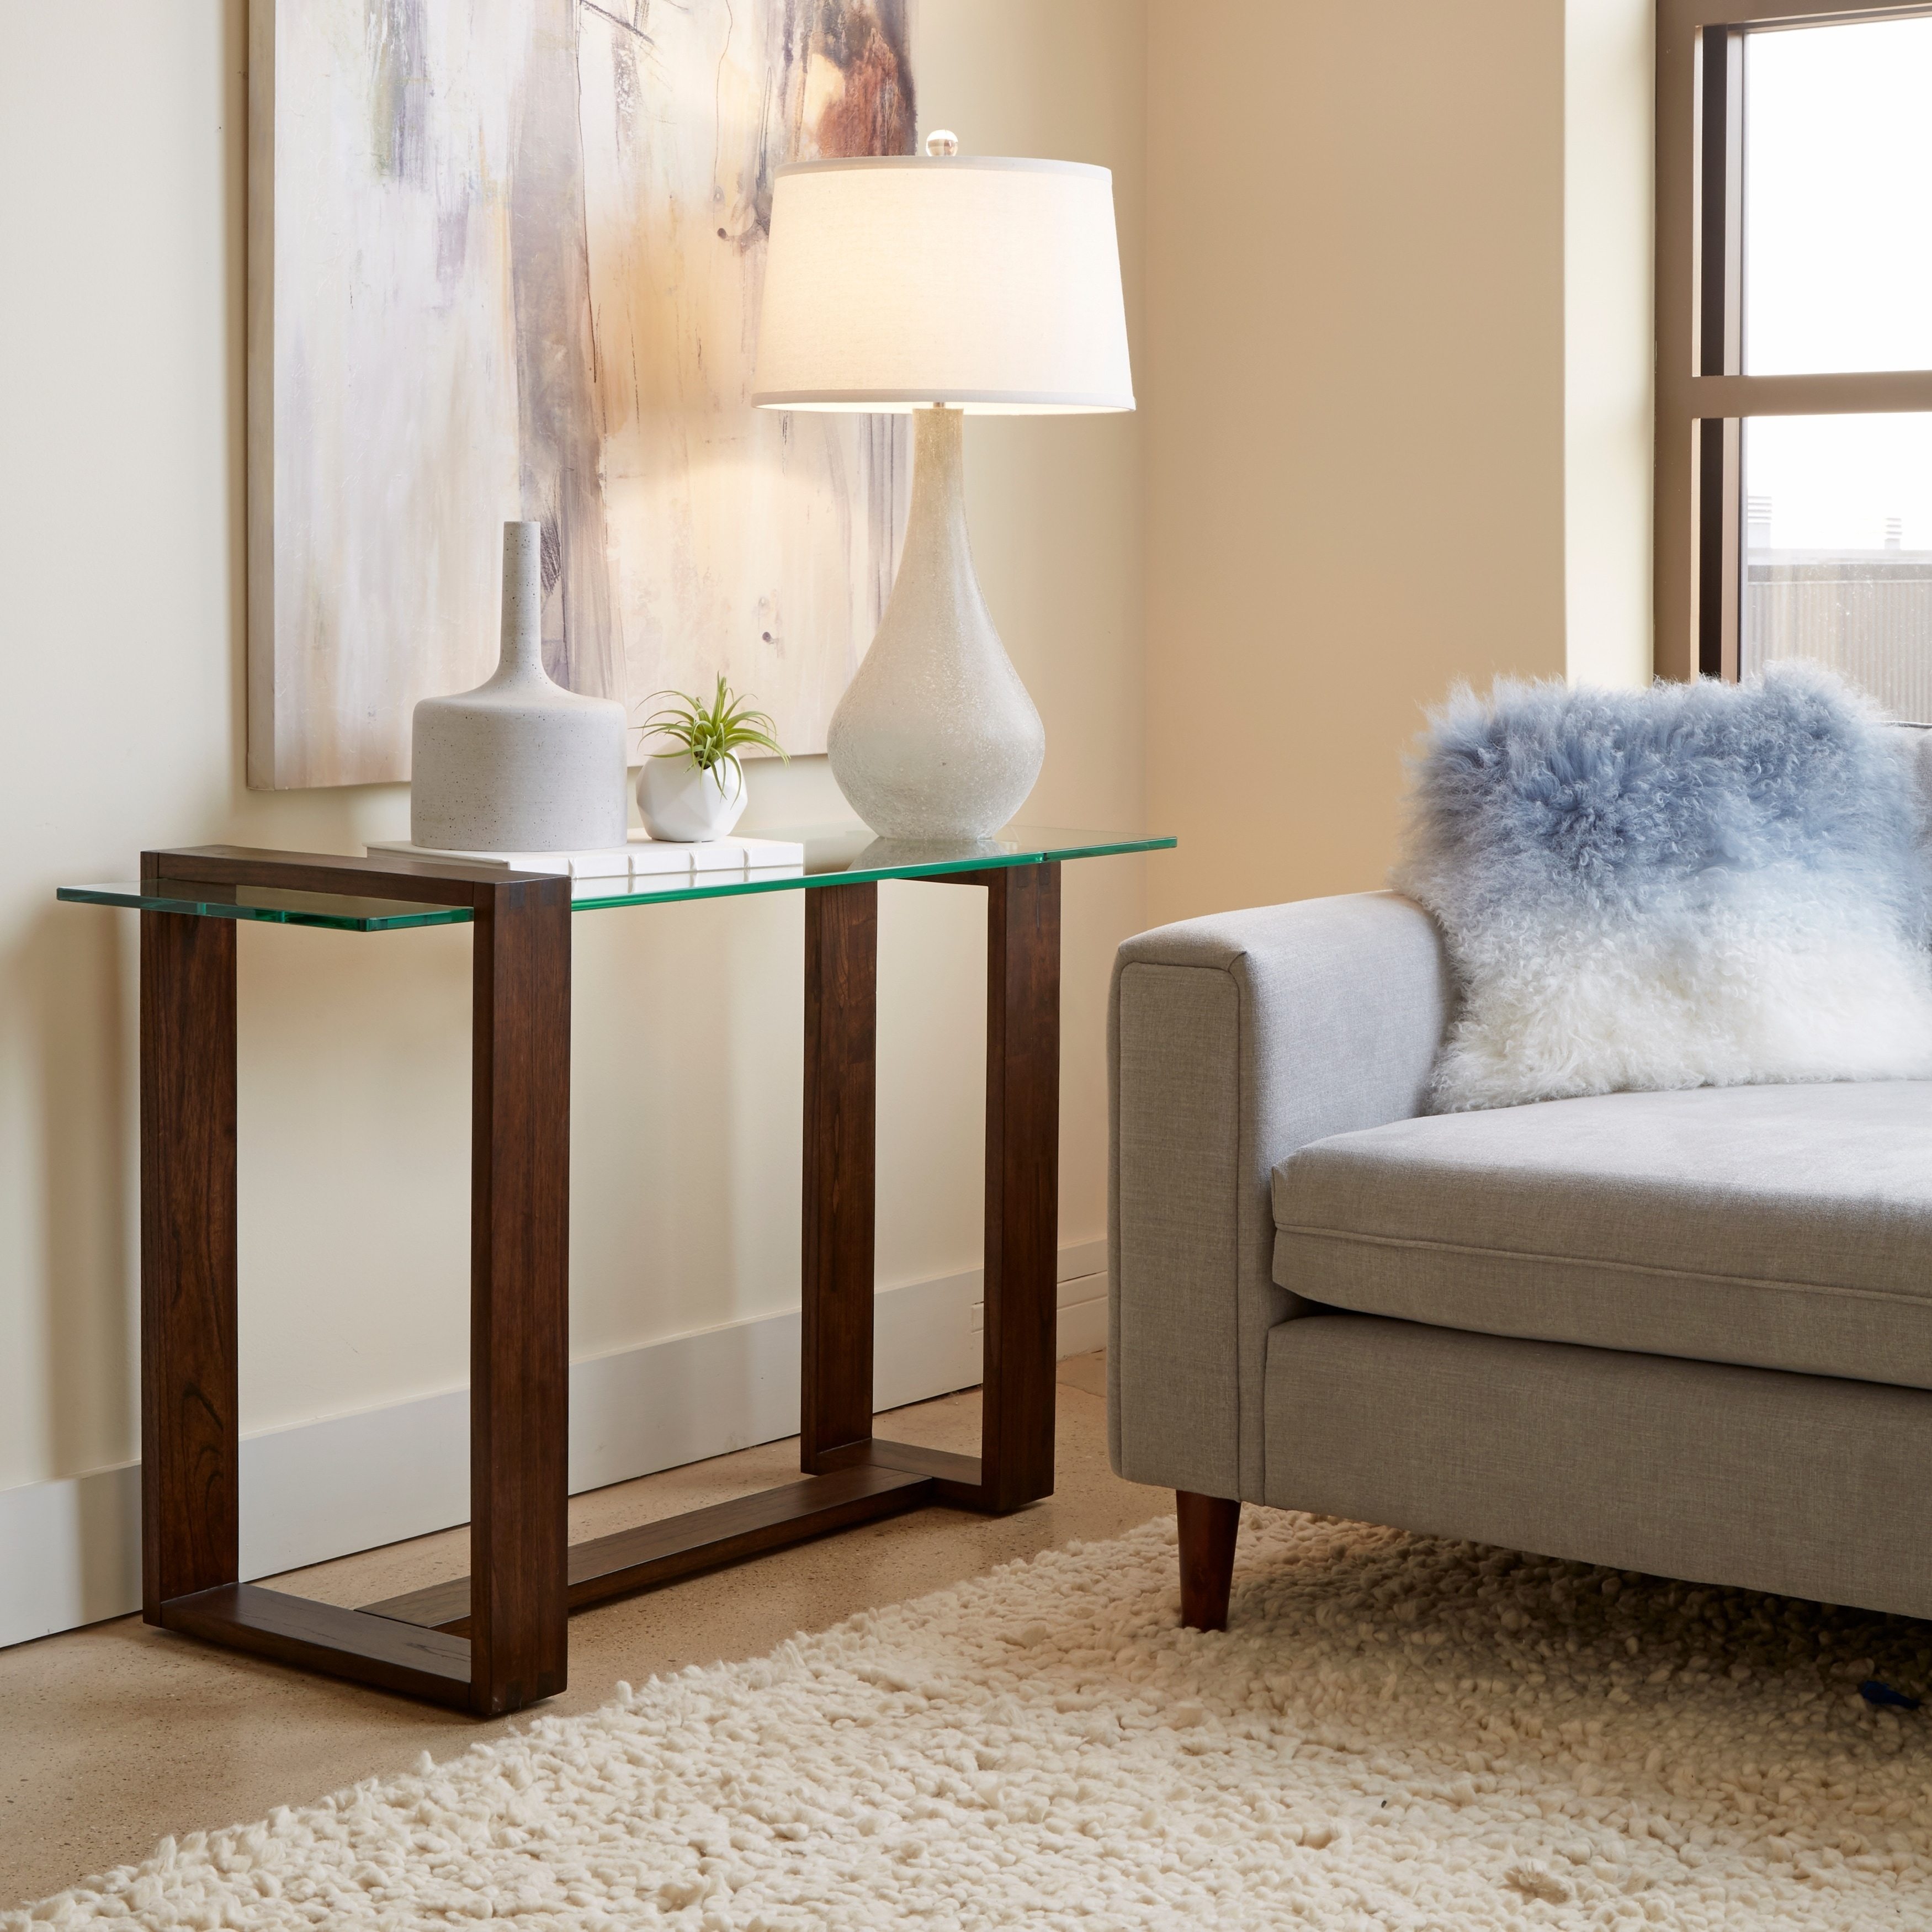 Bristow Modern Acorn Wood and Glass Entryway Sofa Table